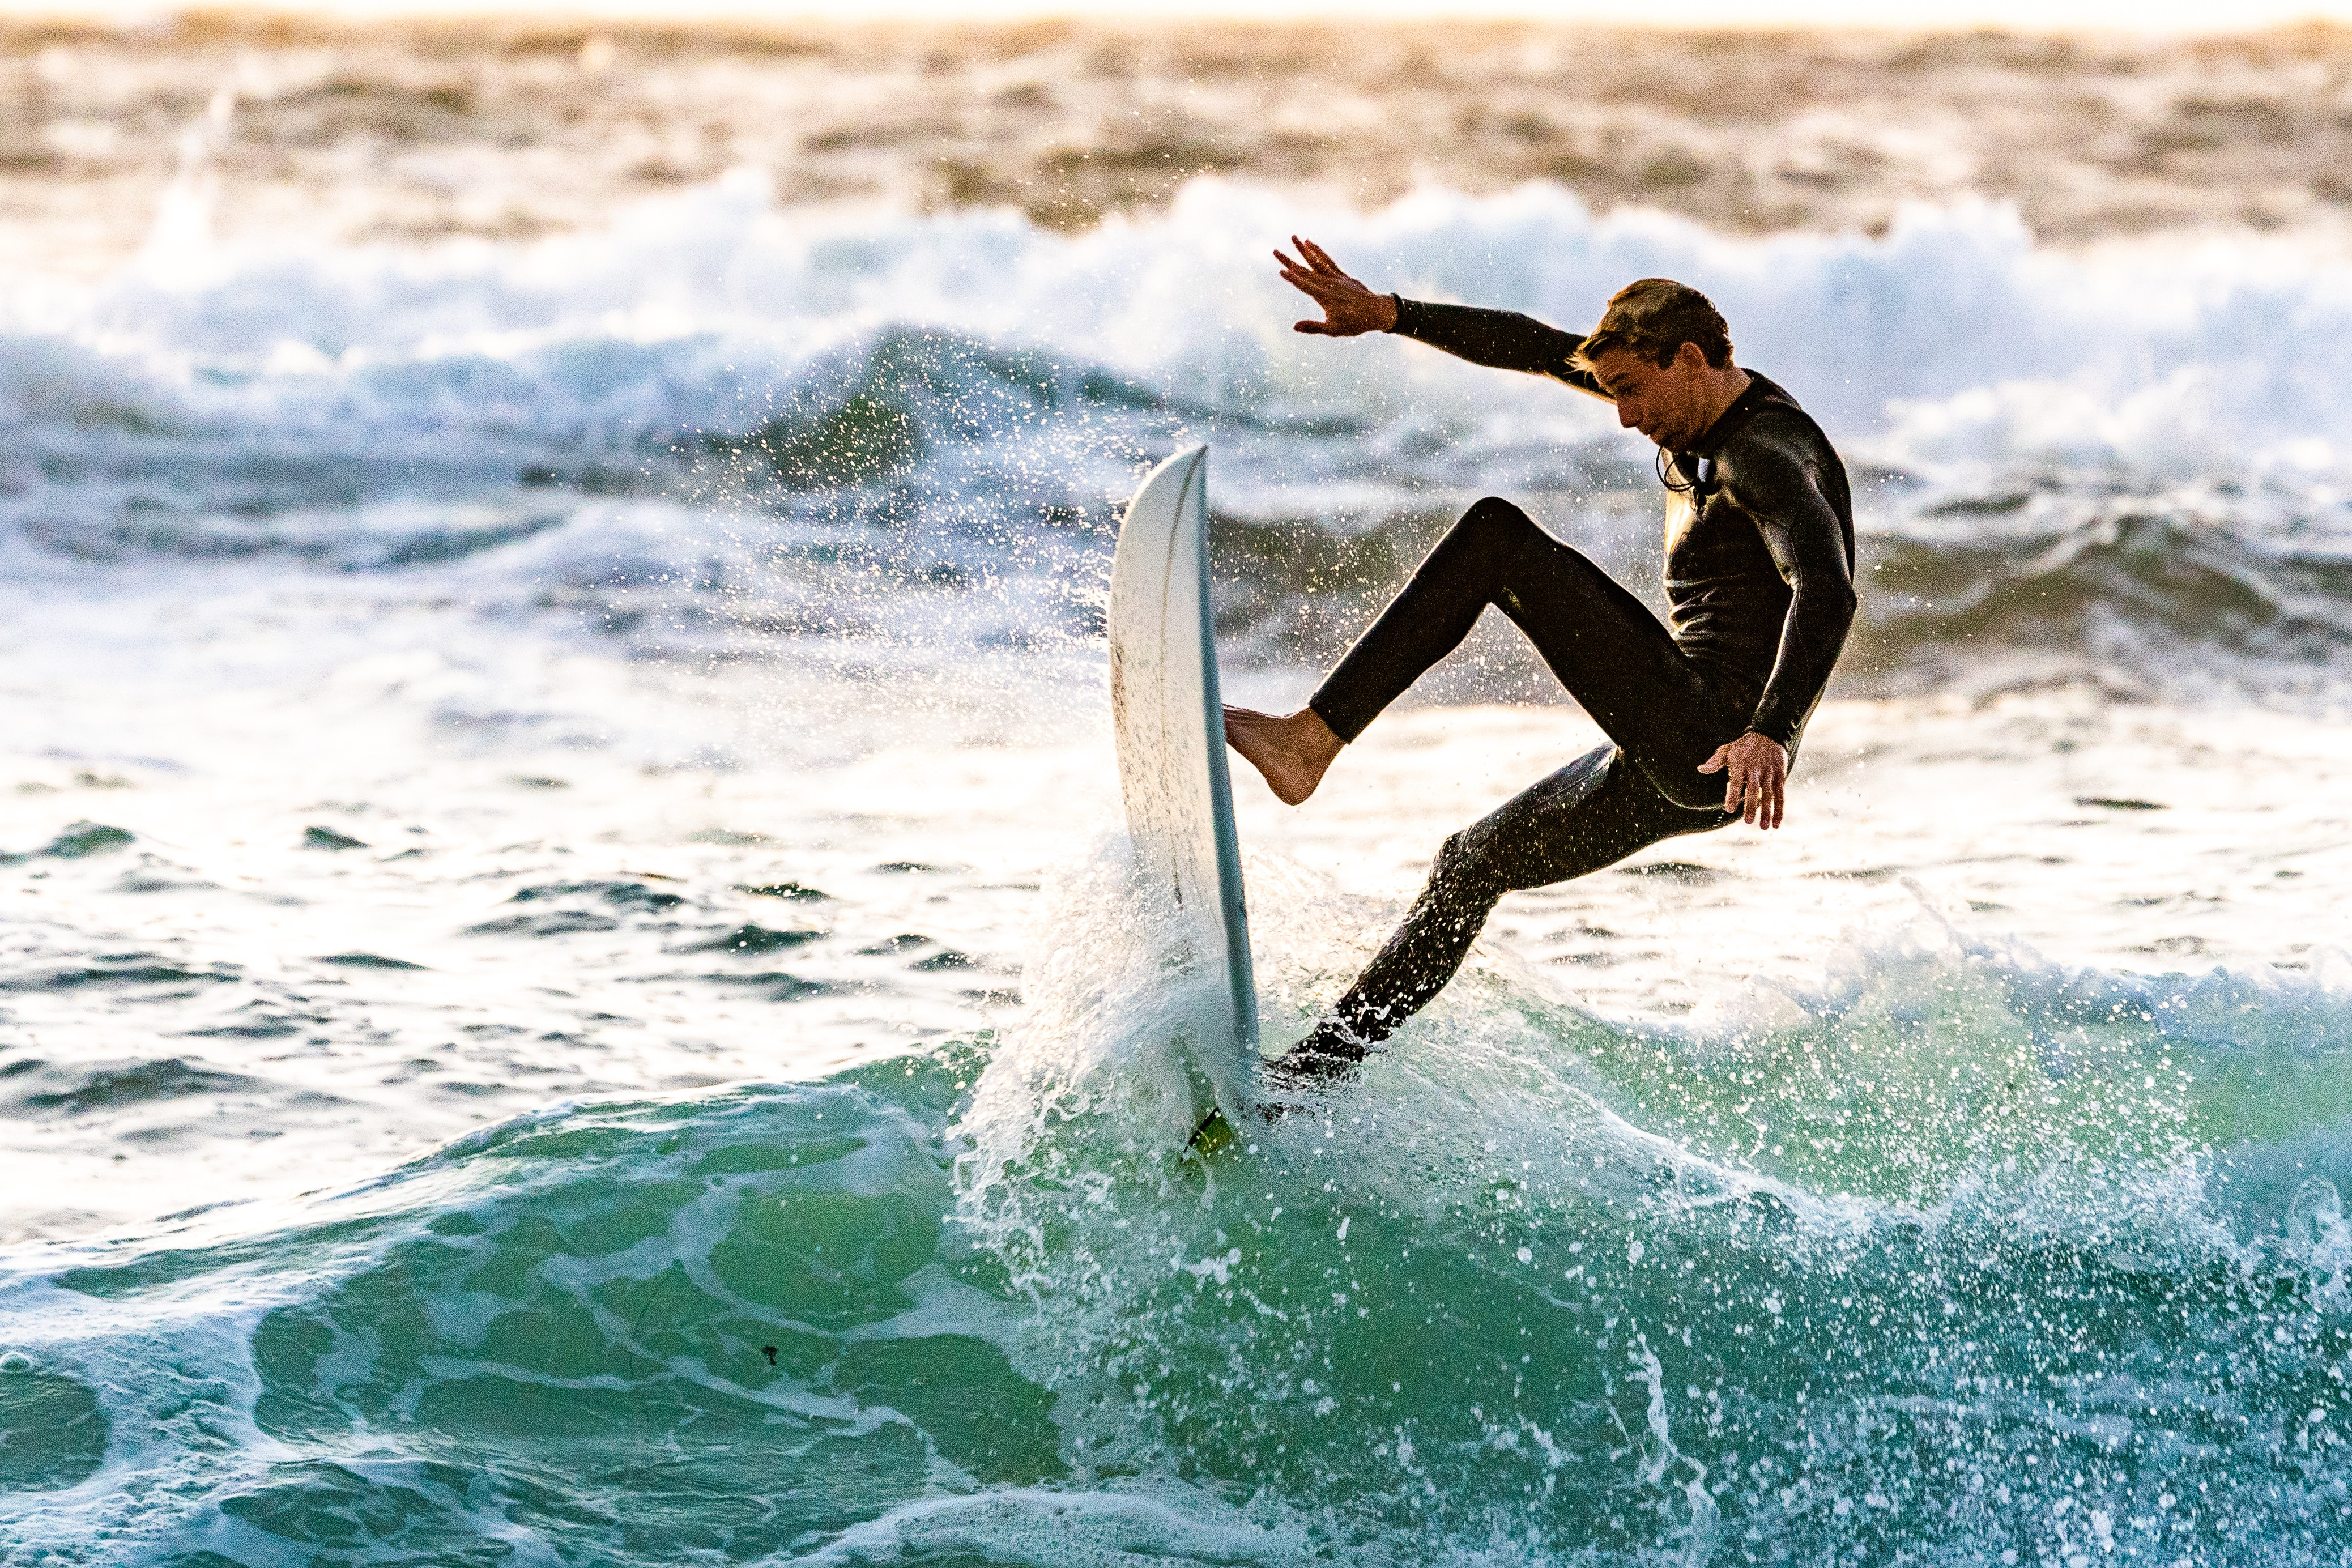 A surfer performing tricks